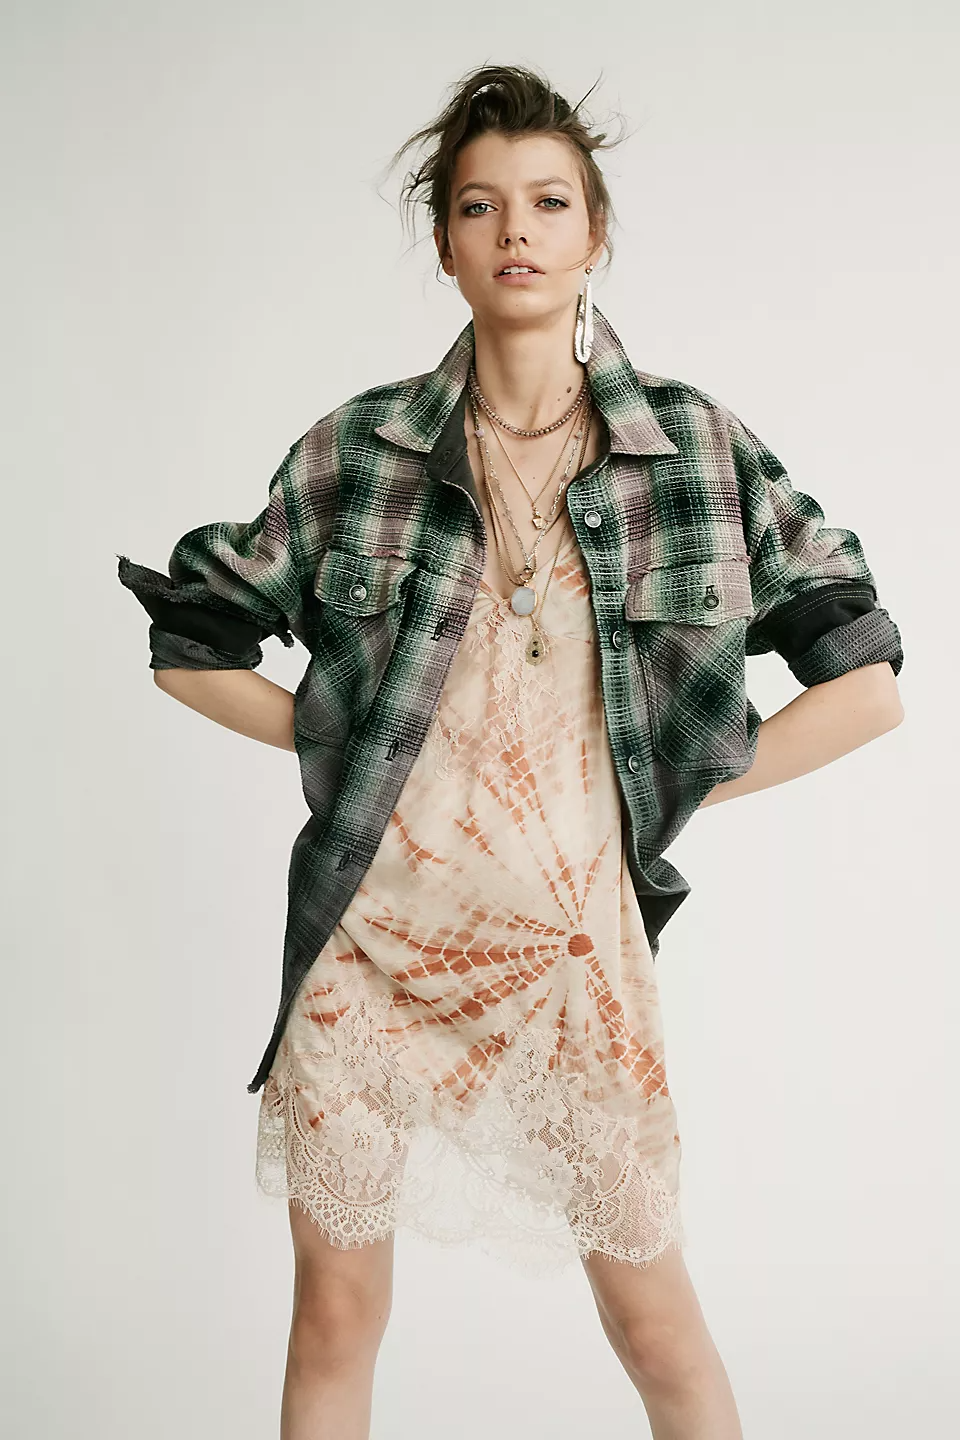 """<br><br><strong>We The Free</strong> Anneli Plaid Shirt Jacket, $, available at <a href=""""https://go.skimresources.com/?id=30283X879131&url=https%3A%2F%2Fwww.freepeople.com%2Fshop%2Fanneli-plaid-shirt-jacket%2F"""" rel=""""nofollow noopener"""" target=""""_blank"""" data-ylk=""""slk:Free People"""" class=""""link rapid-noclick-resp"""">Free People</a>"""